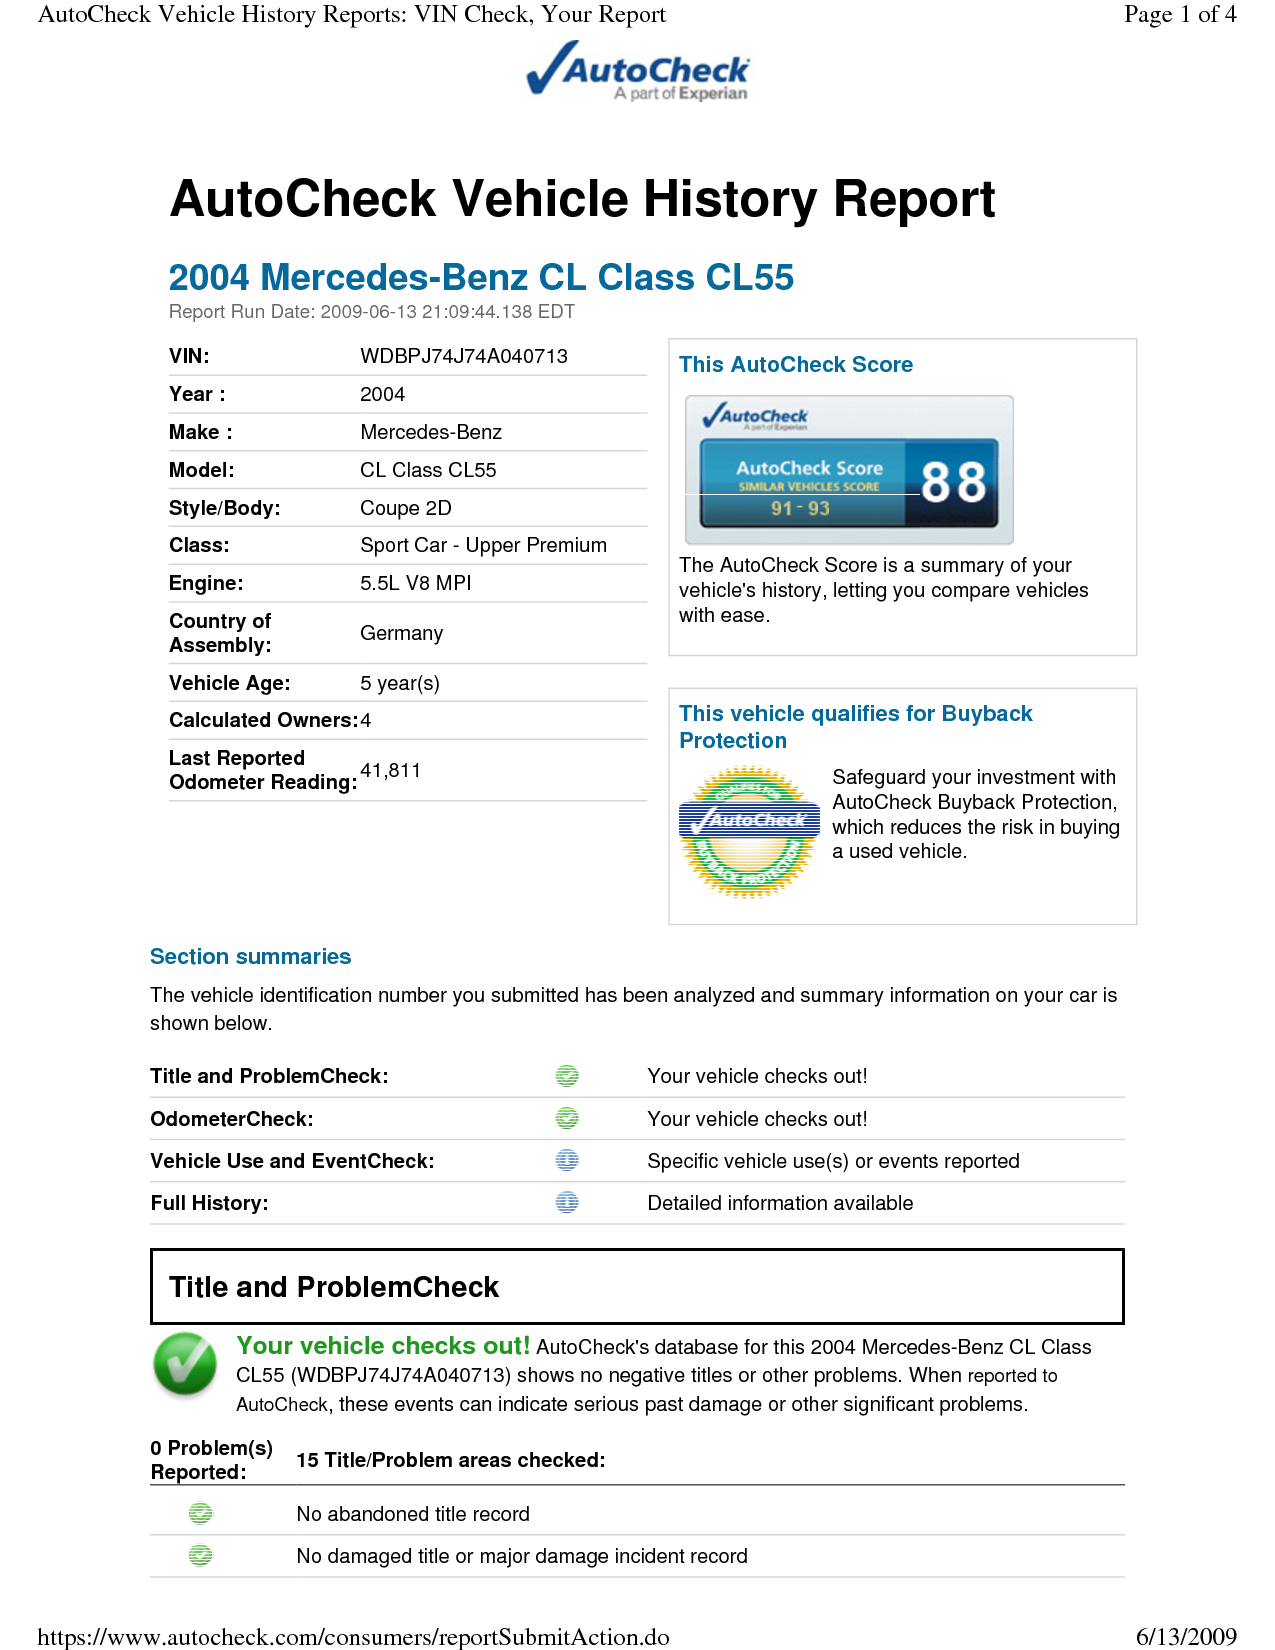 Free Carfax Check Lovely Carfax Vs Autocheck Reports What You Don T Know